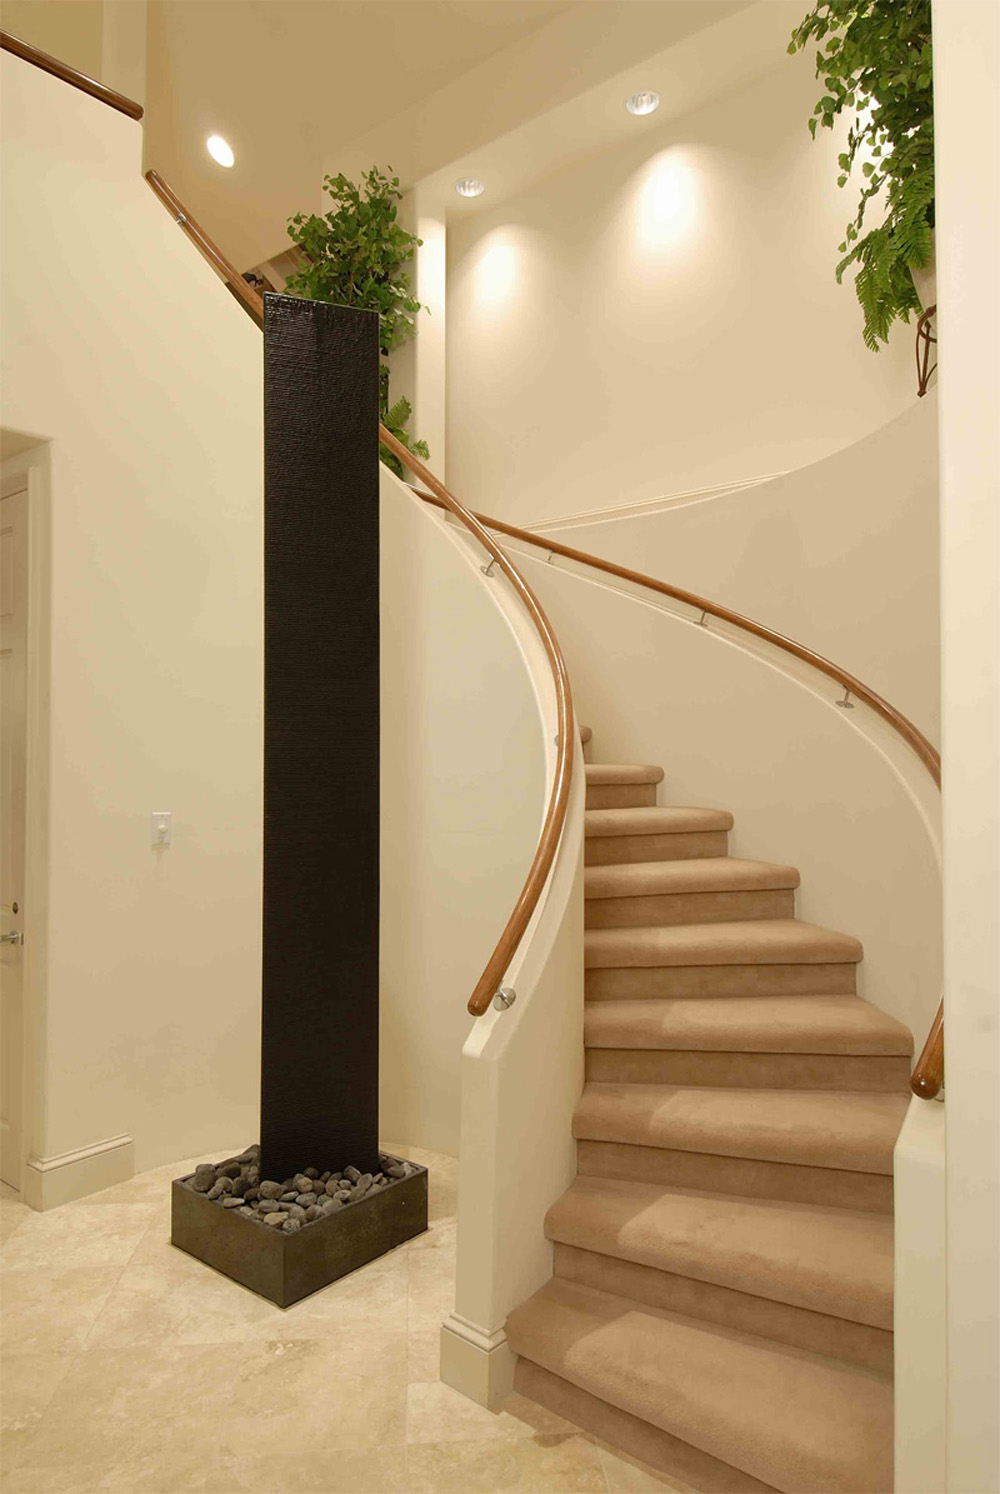 Beautiful Staircase Design Gallery 10 Photos | Stairs For House Design